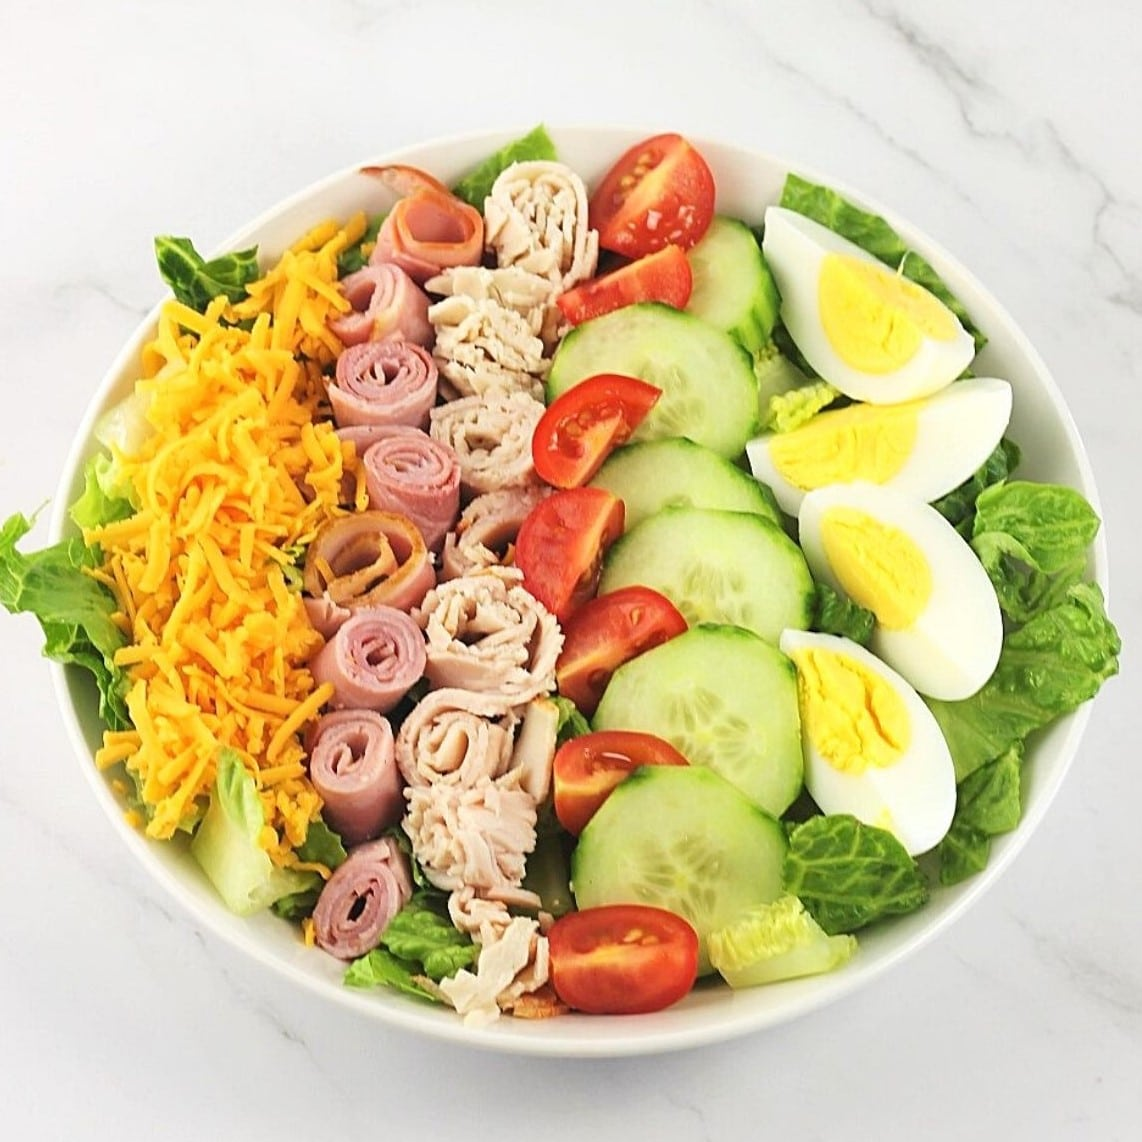 bowl of lettuce topped with shredded cheese, rolled and sliced deli ham and turkey, quartered cherry tomatoes, sliced cucumber, and hard-boiled egg quarters